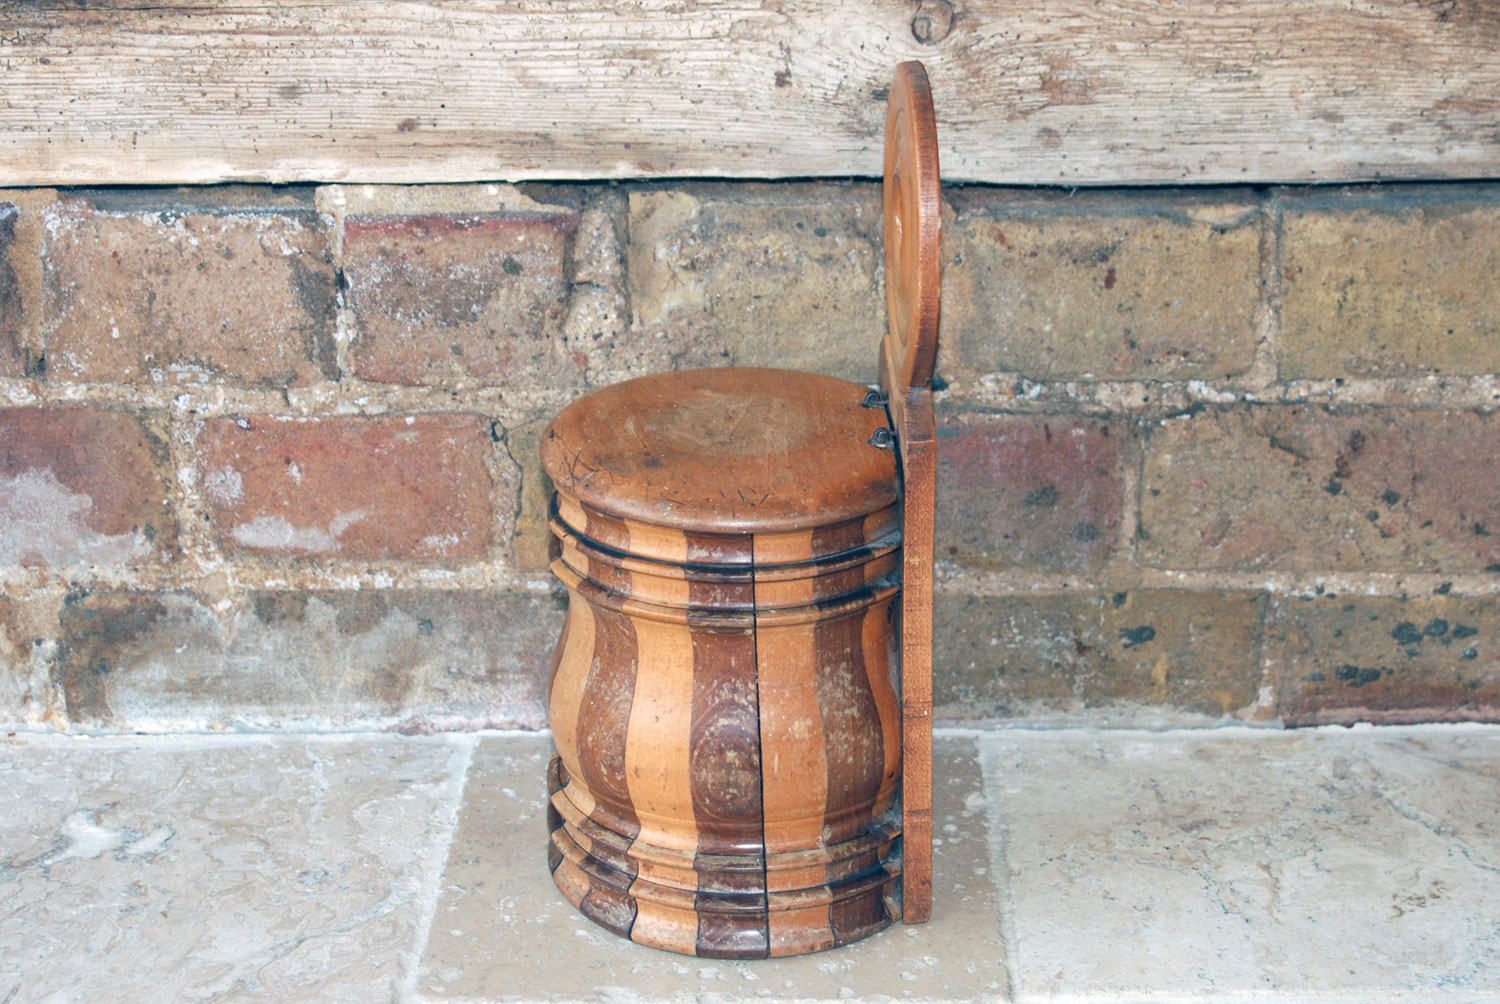 scottish georgian victorian 19th century turned wooden mahogany boxwood treen wall mounted salt box